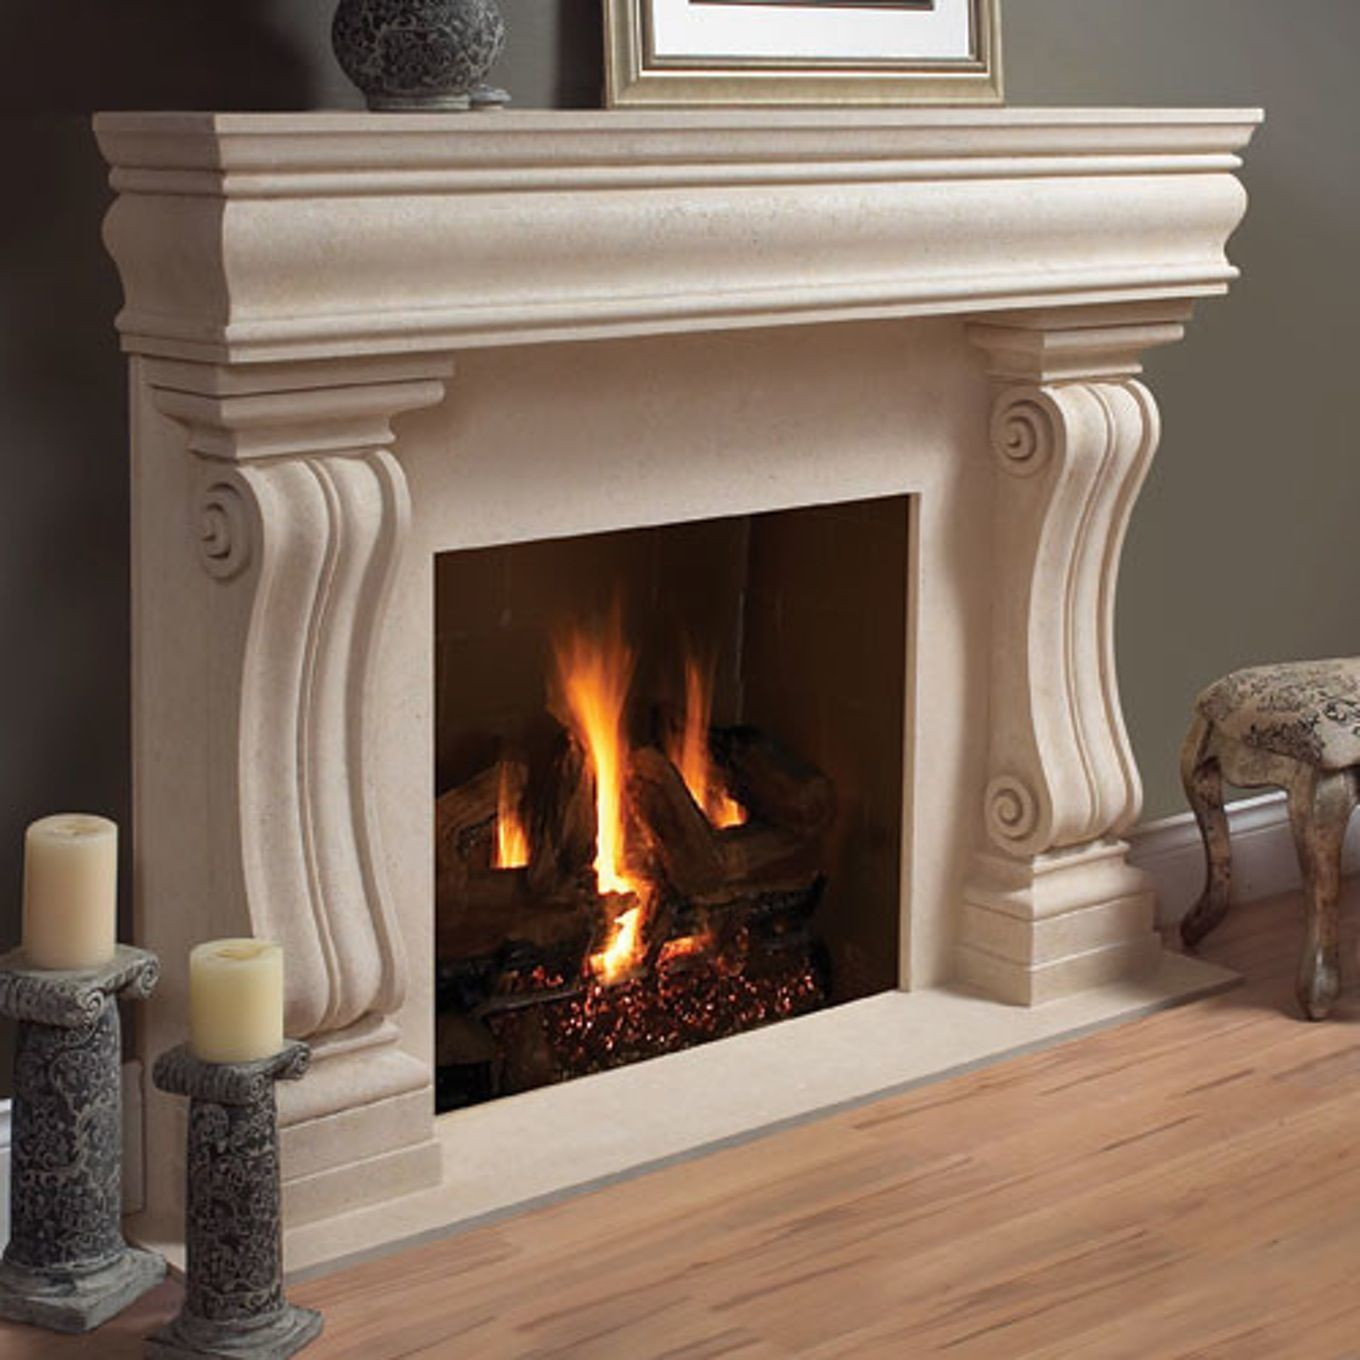 Fireplace Mantels For Sale Rustic Fireplace Mantels Home Depot